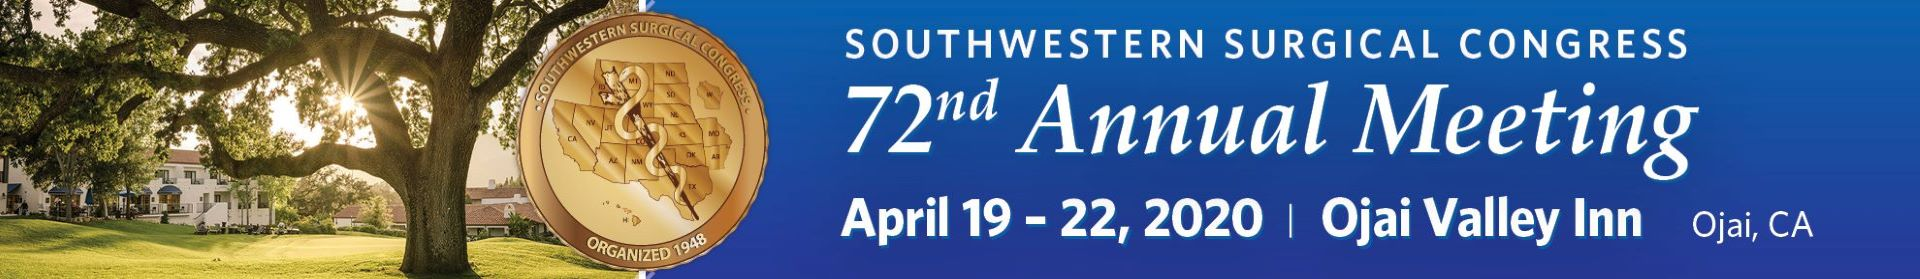 SWSC 72nd Annual Meeting 2020 Event Banner